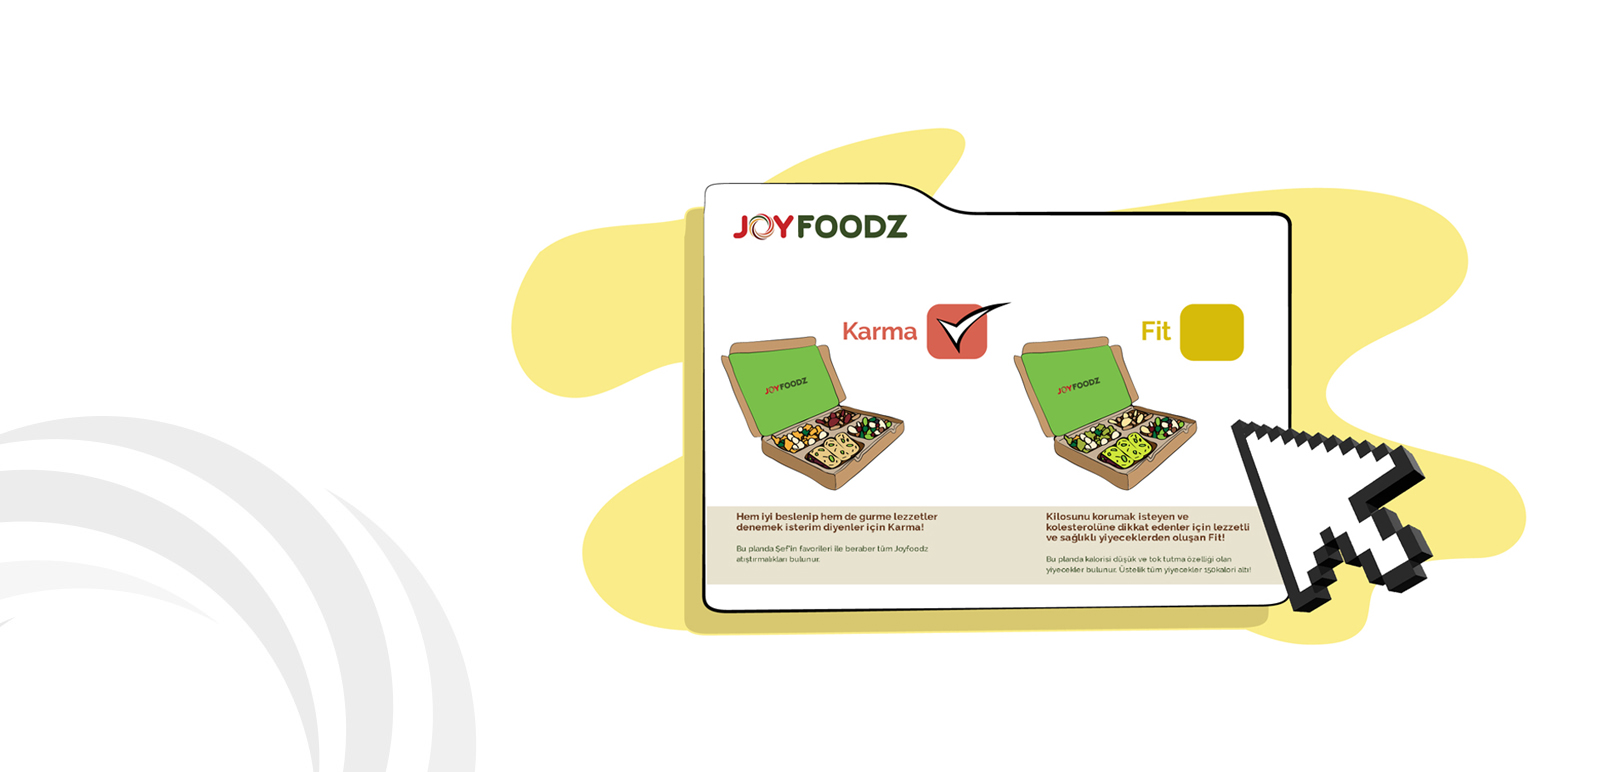 Joyfoodz Animation, Illustration 7